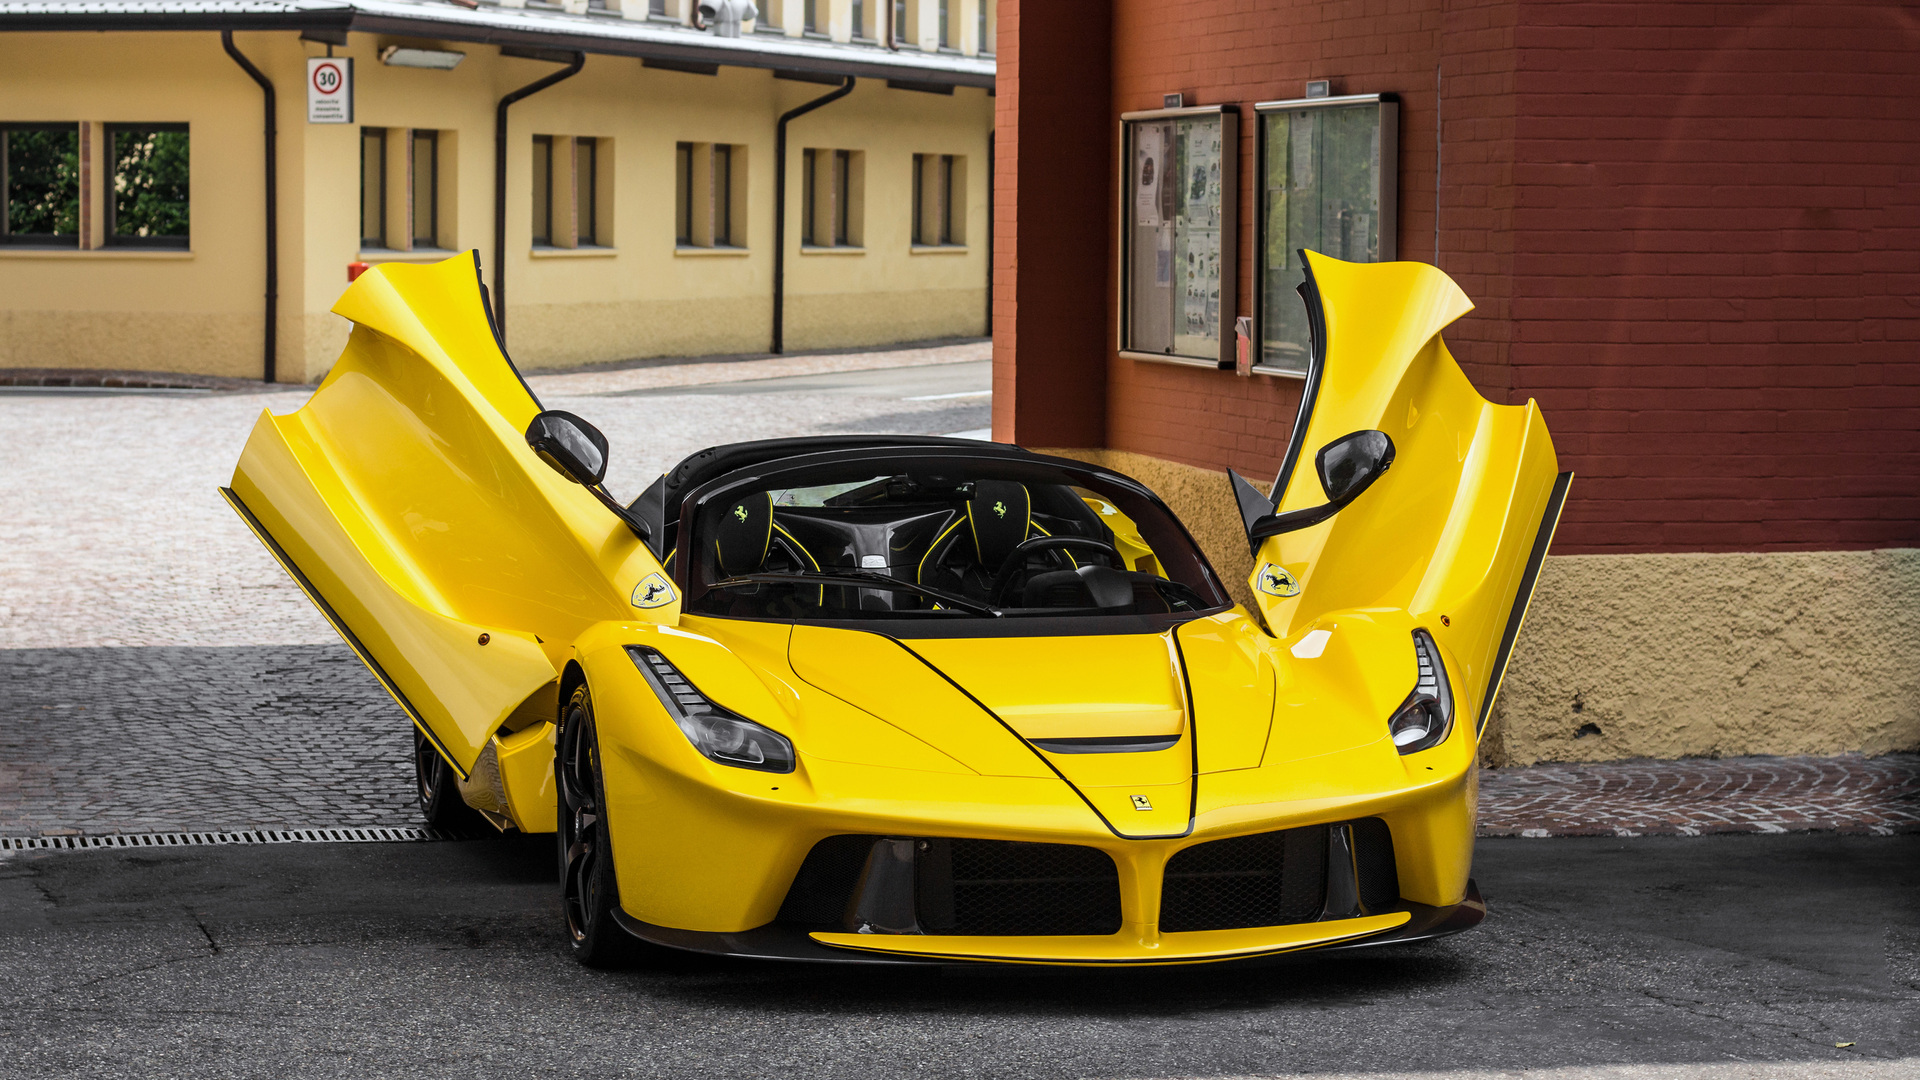 1920x1080 Ferrari Laferrari Aperta Laptop Full Hd 1080p Hd 4k Wallpapers Images Backgrounds Photos And Pictures